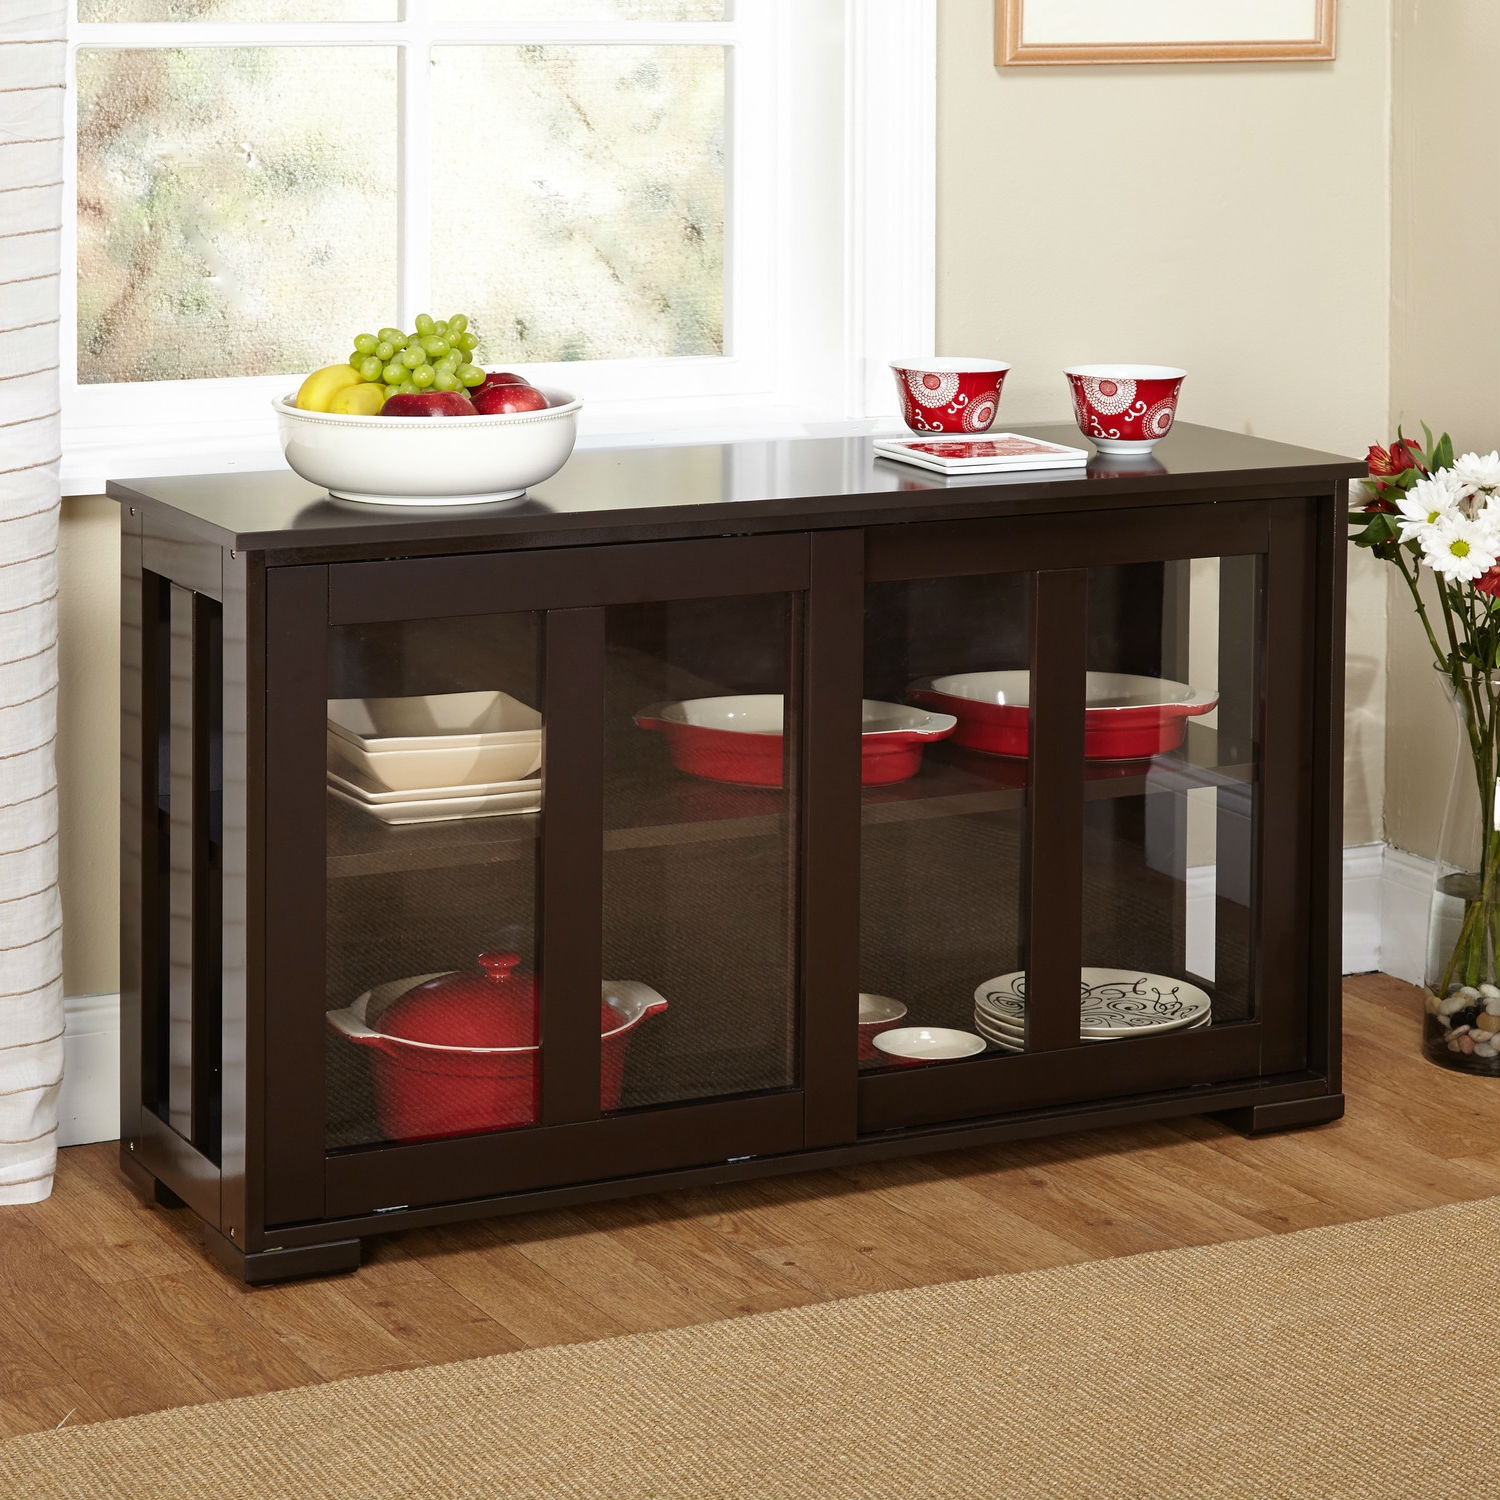 Espresso Sideboard Buffet Dining Kitchen Cabinet with 2 Glass Sliding Doors FastFurnishings com